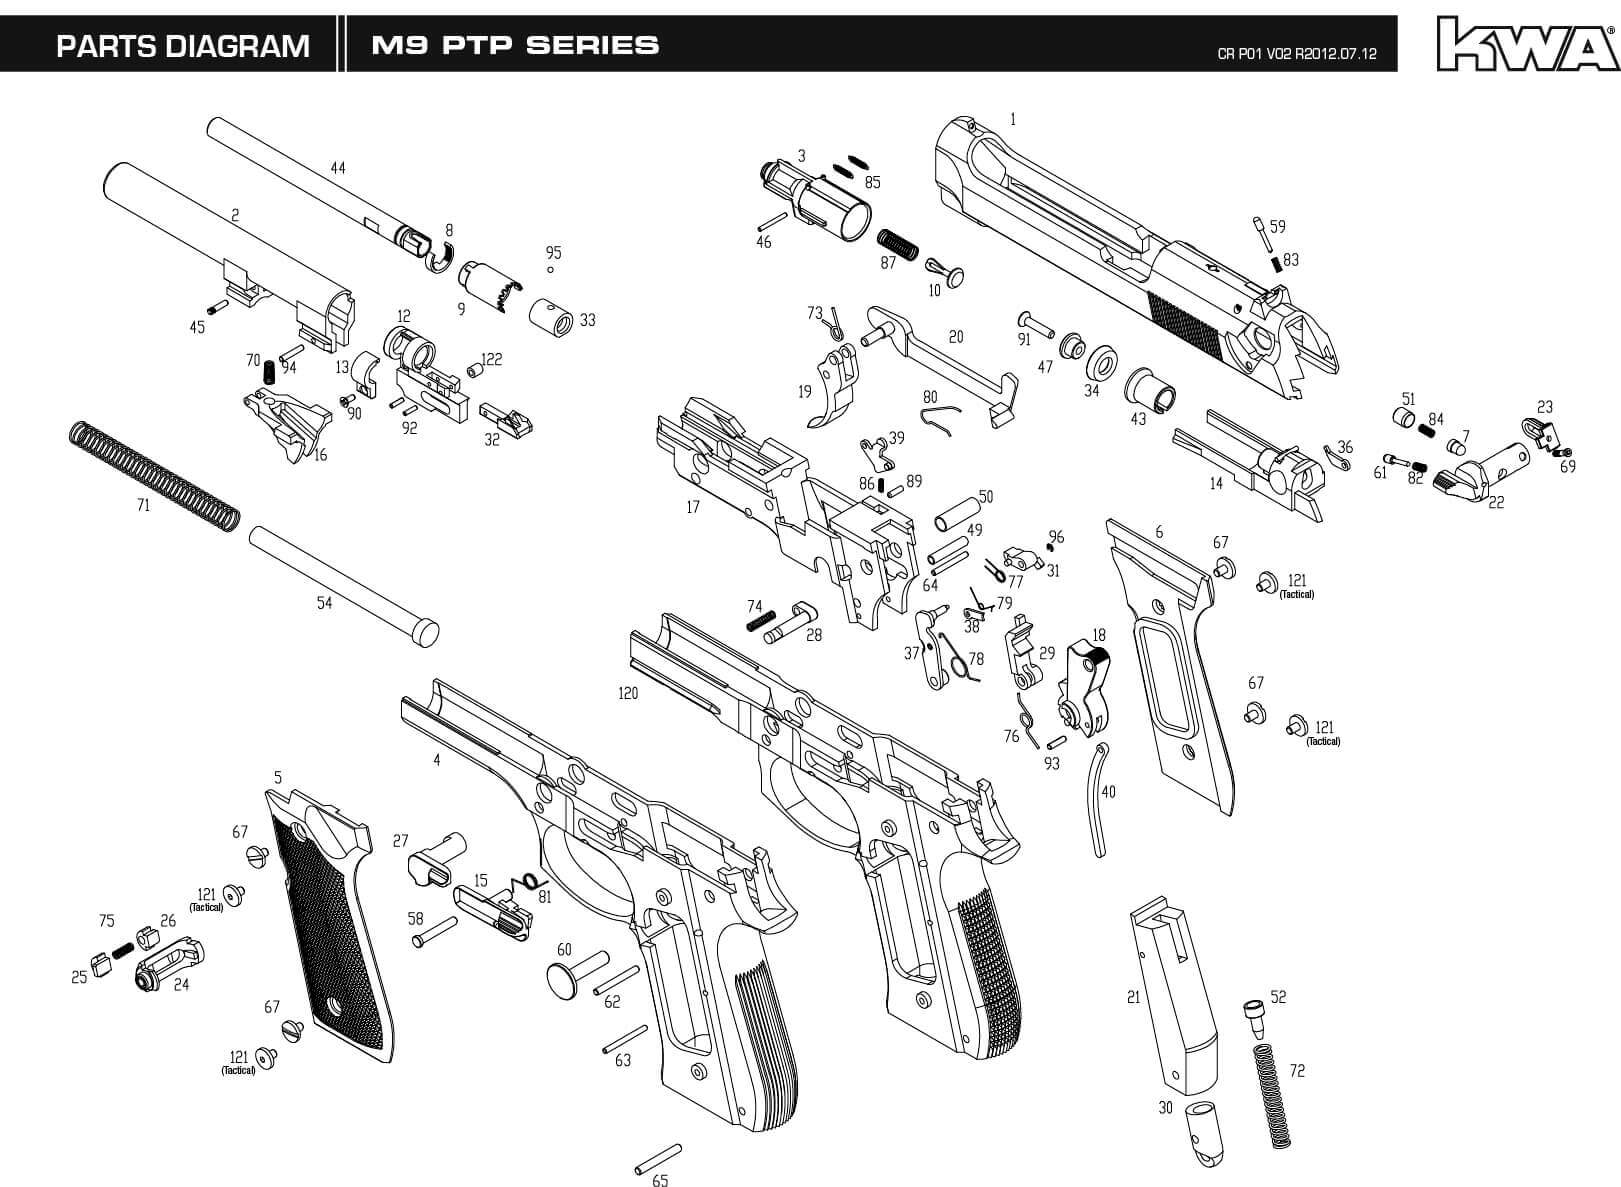 hight resolution of m9 parts diagram wiring diagram data today m9 parts manual downloads kwa airsoft steyr m9 parts